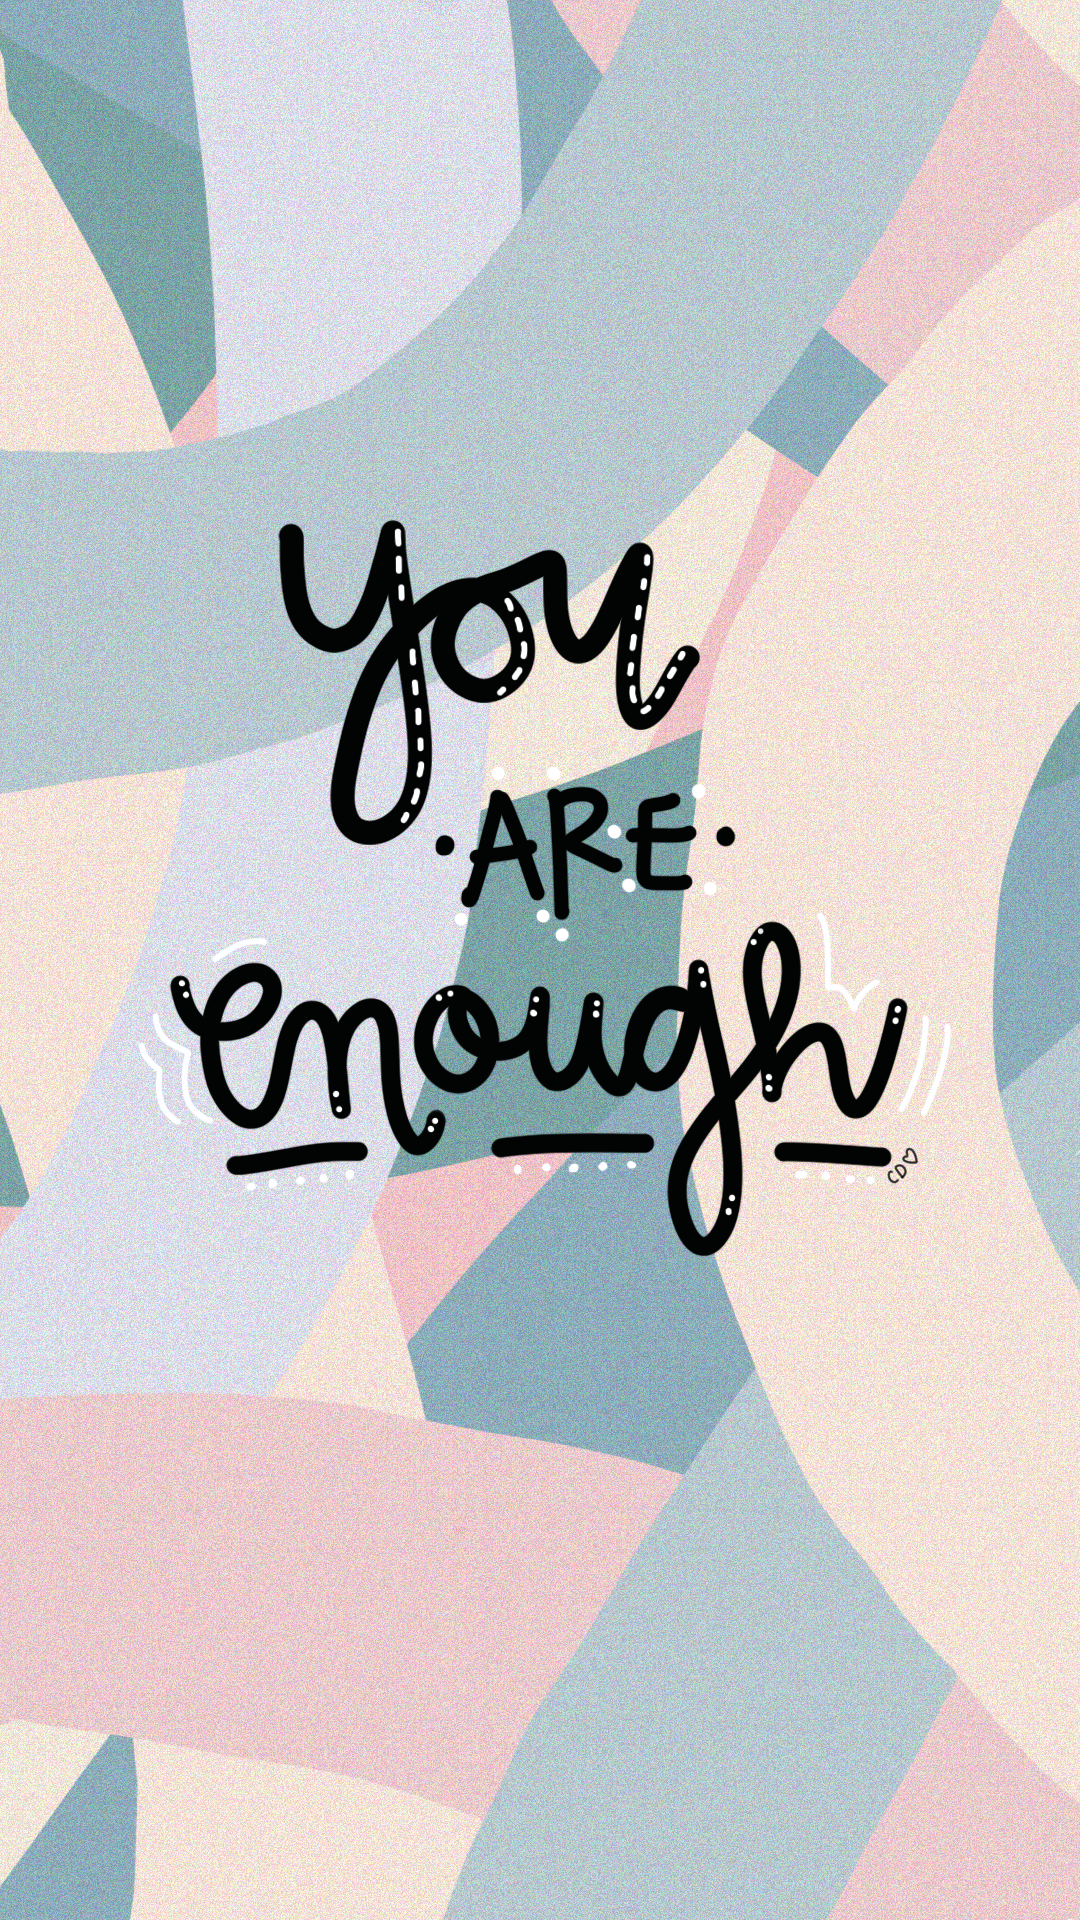 You are enough / motivational quote #inspirationalphonewallpaper iPhone wallpaper quote / Callie